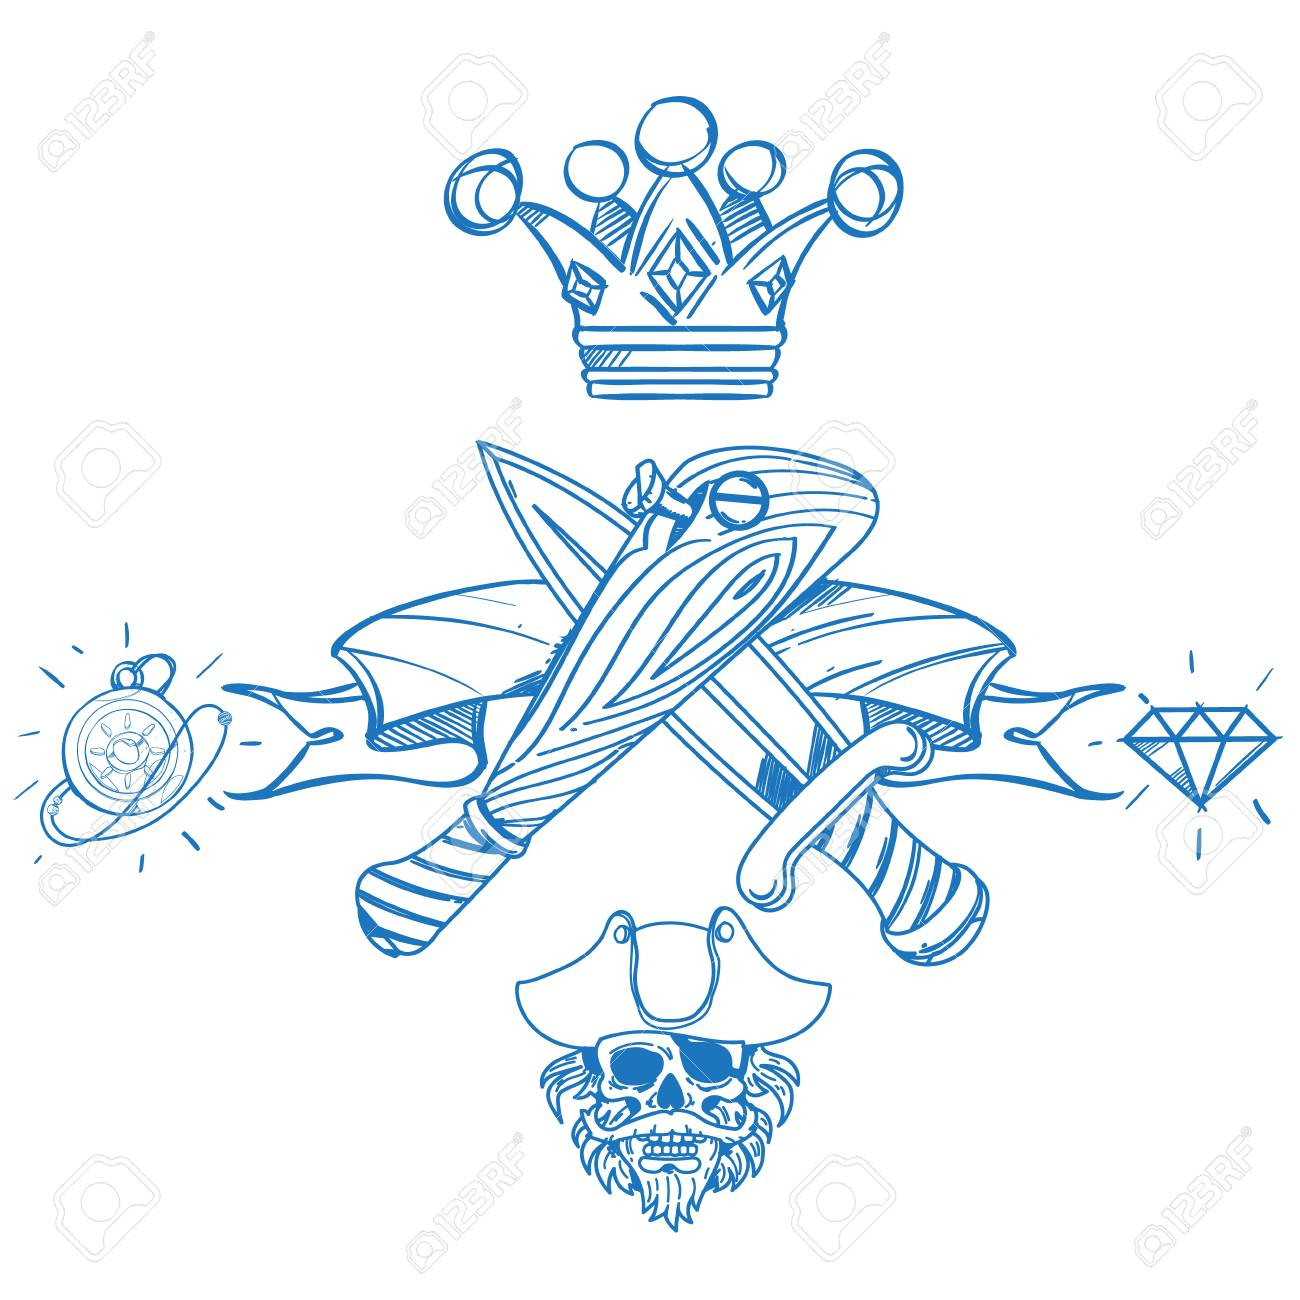 1300x1300 Sketch Of Tattoo With A Crown And A Baseball Bat. Outline